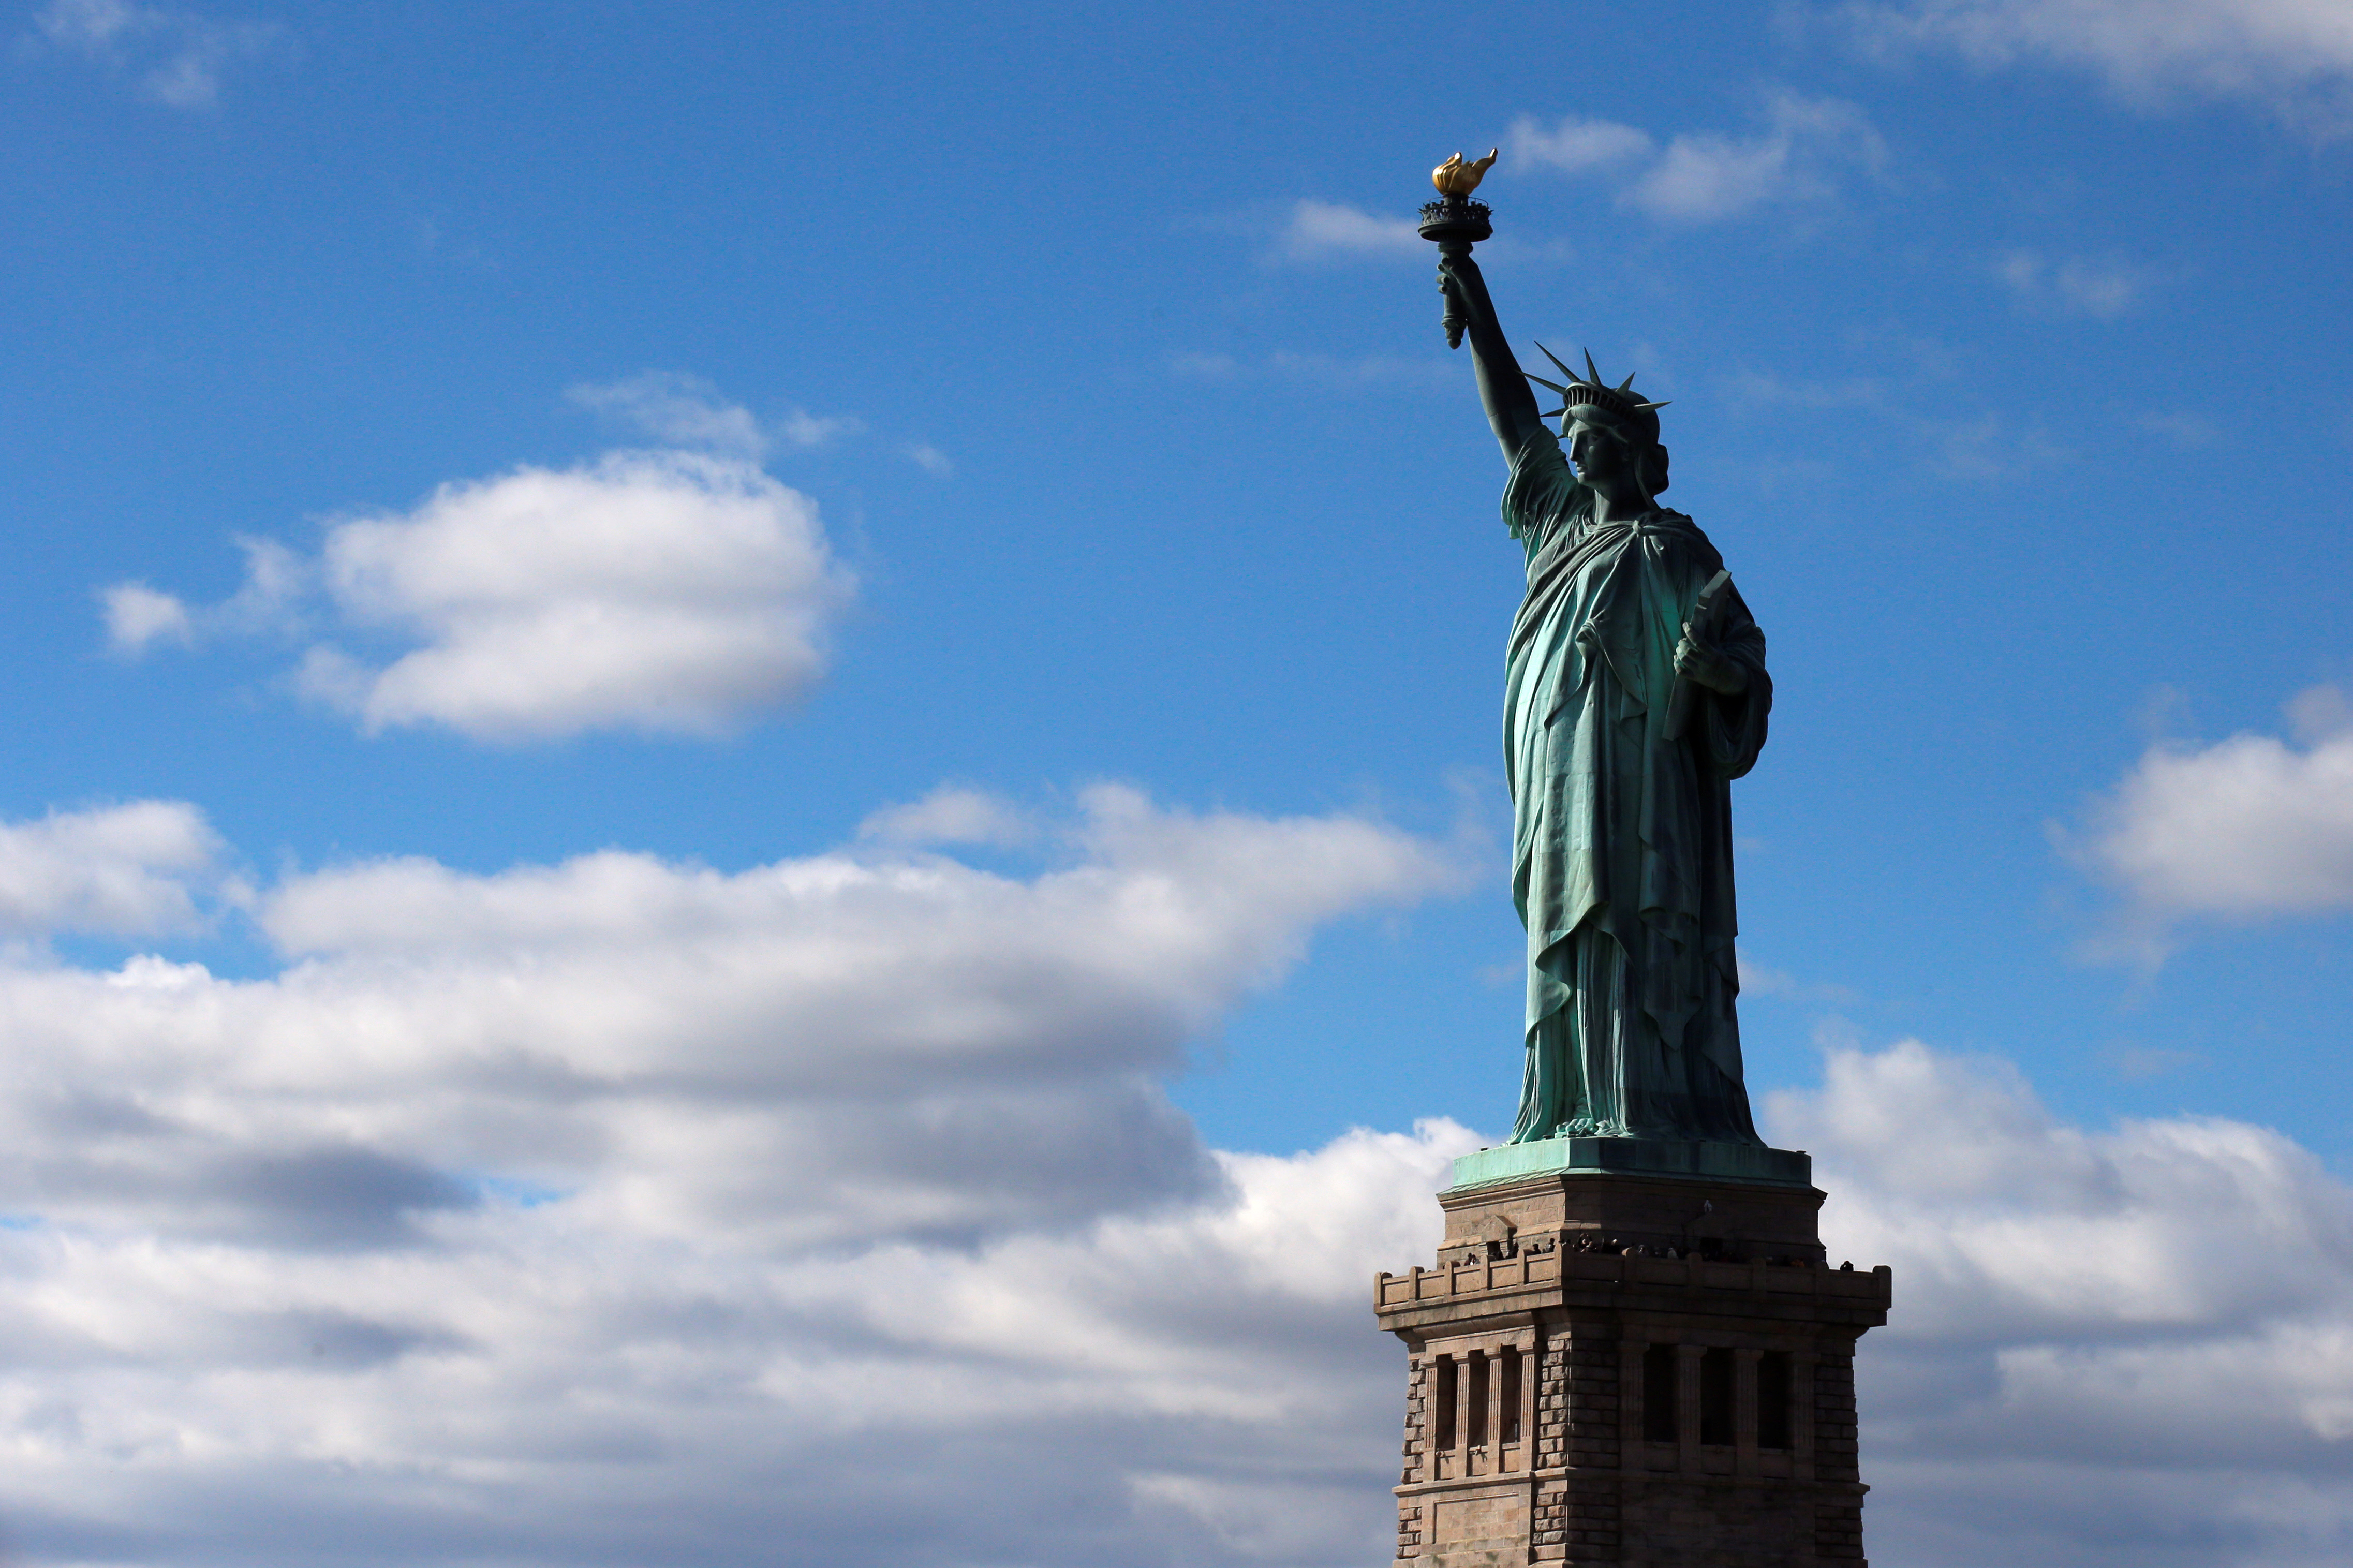 The Statue of Liberty was modeled after an Arab woman | Public ...